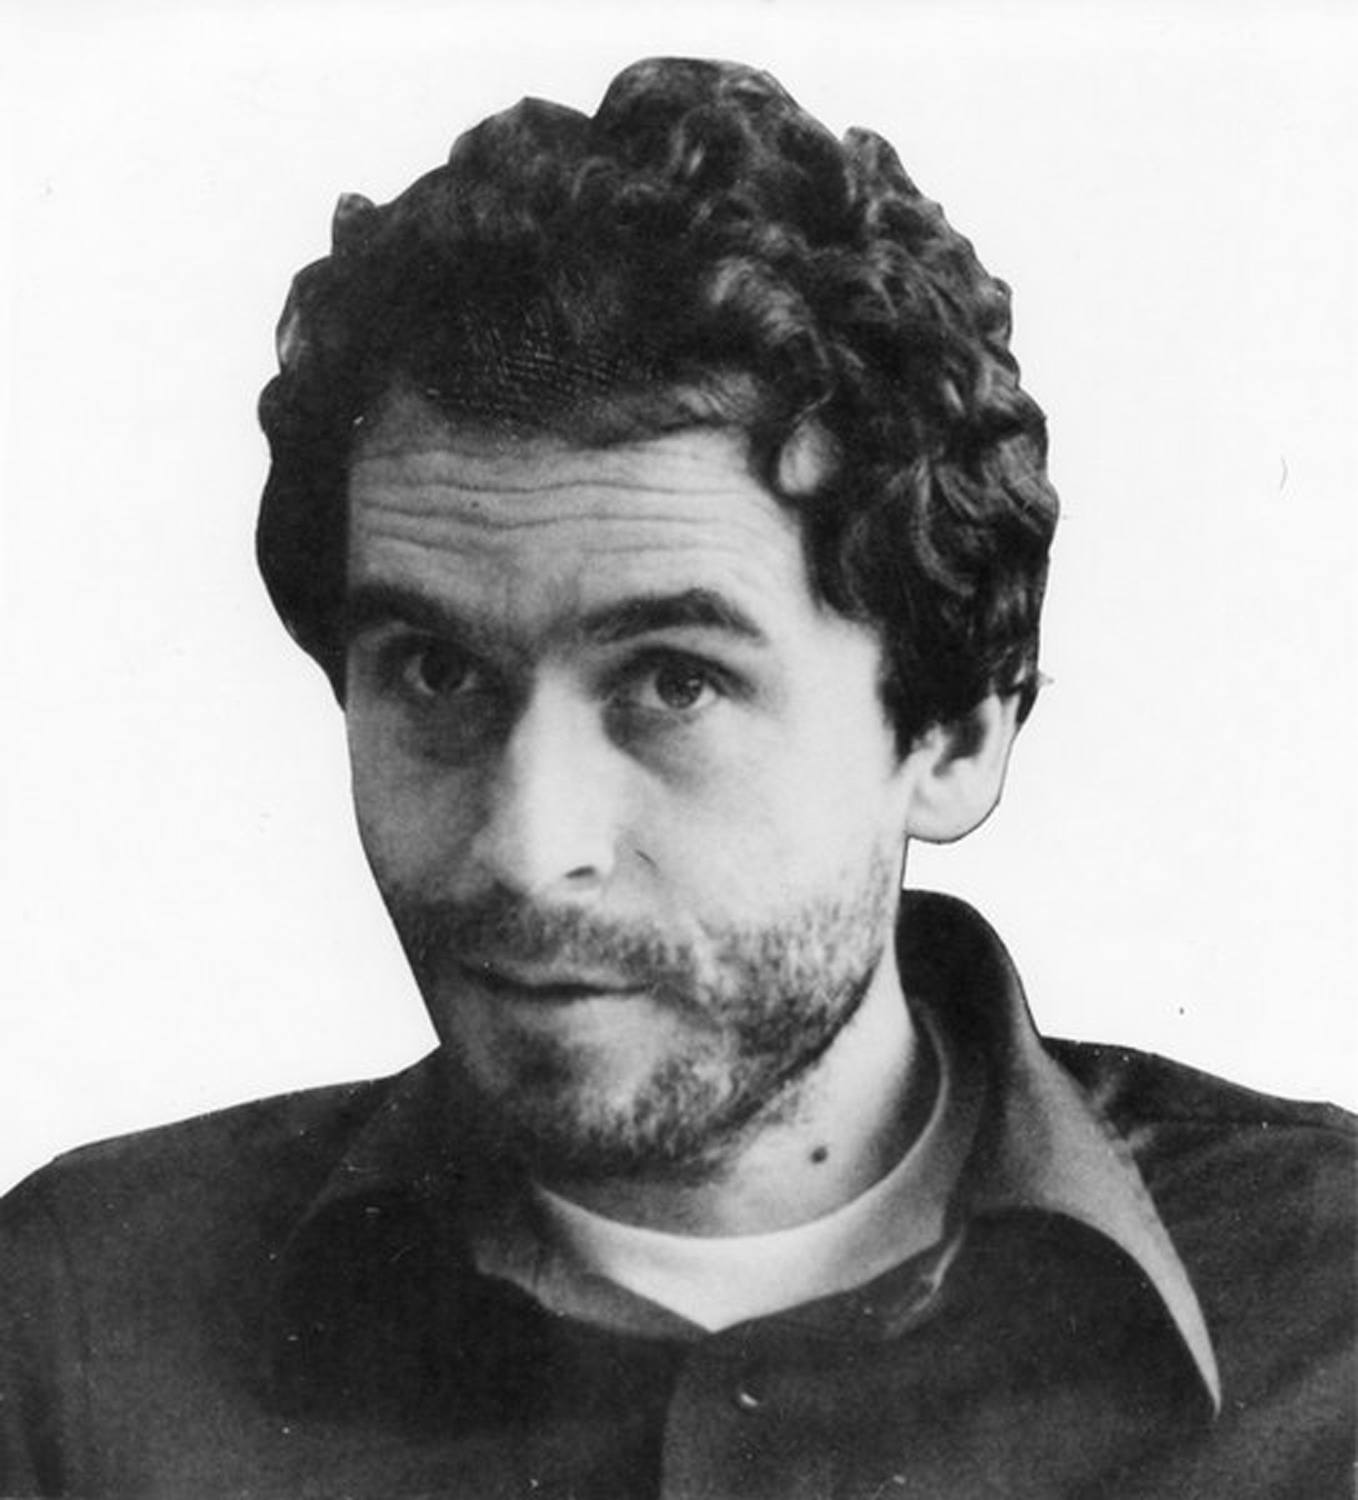 Ted Bundy is am infamous serial killer responsible for the brutal abuse, assault and murder of 36 women in the 1970s.